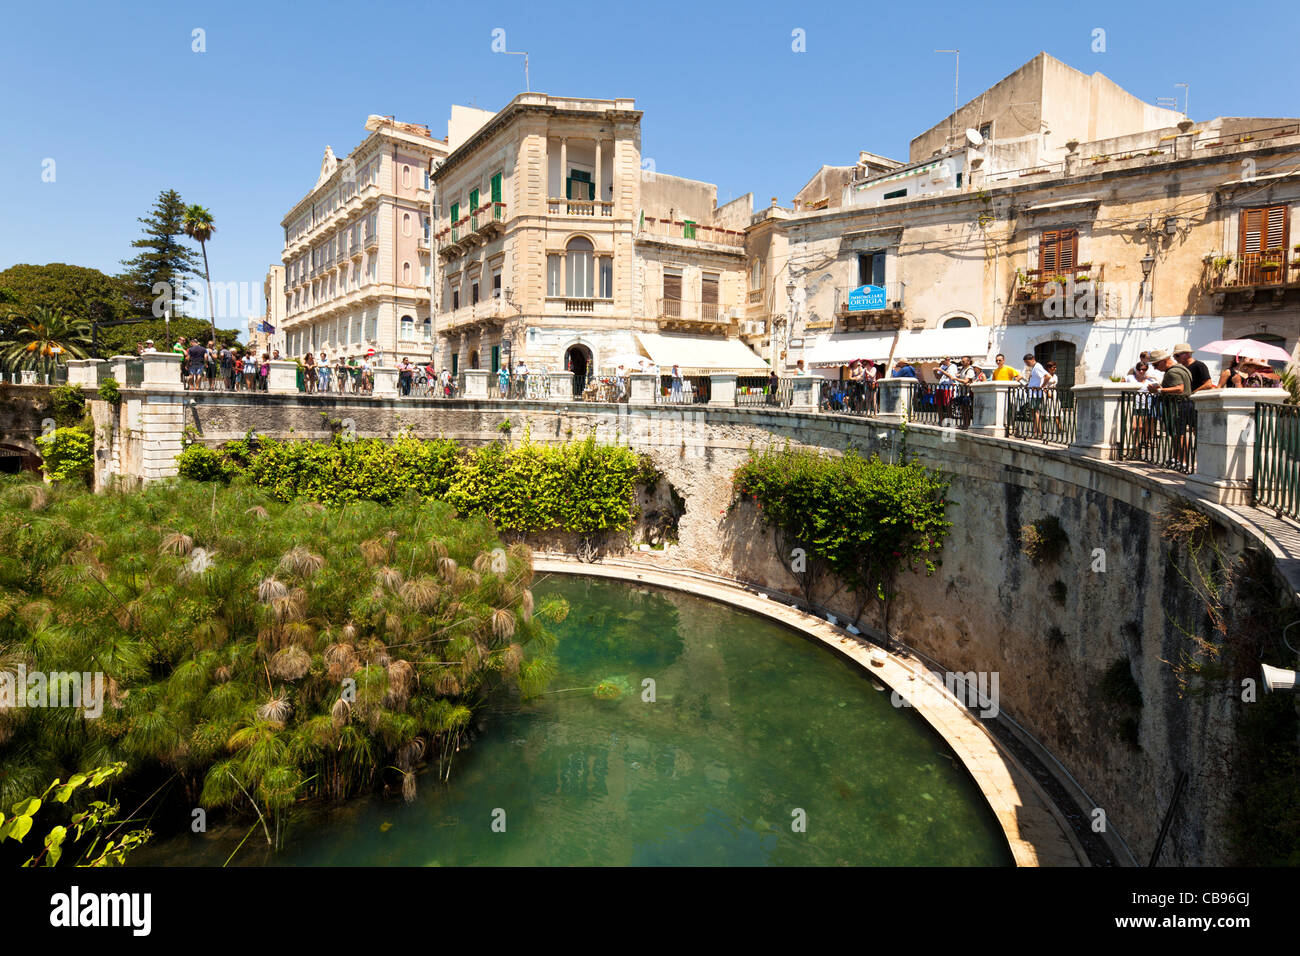 Freshwater well in Syracusa - Stock Image